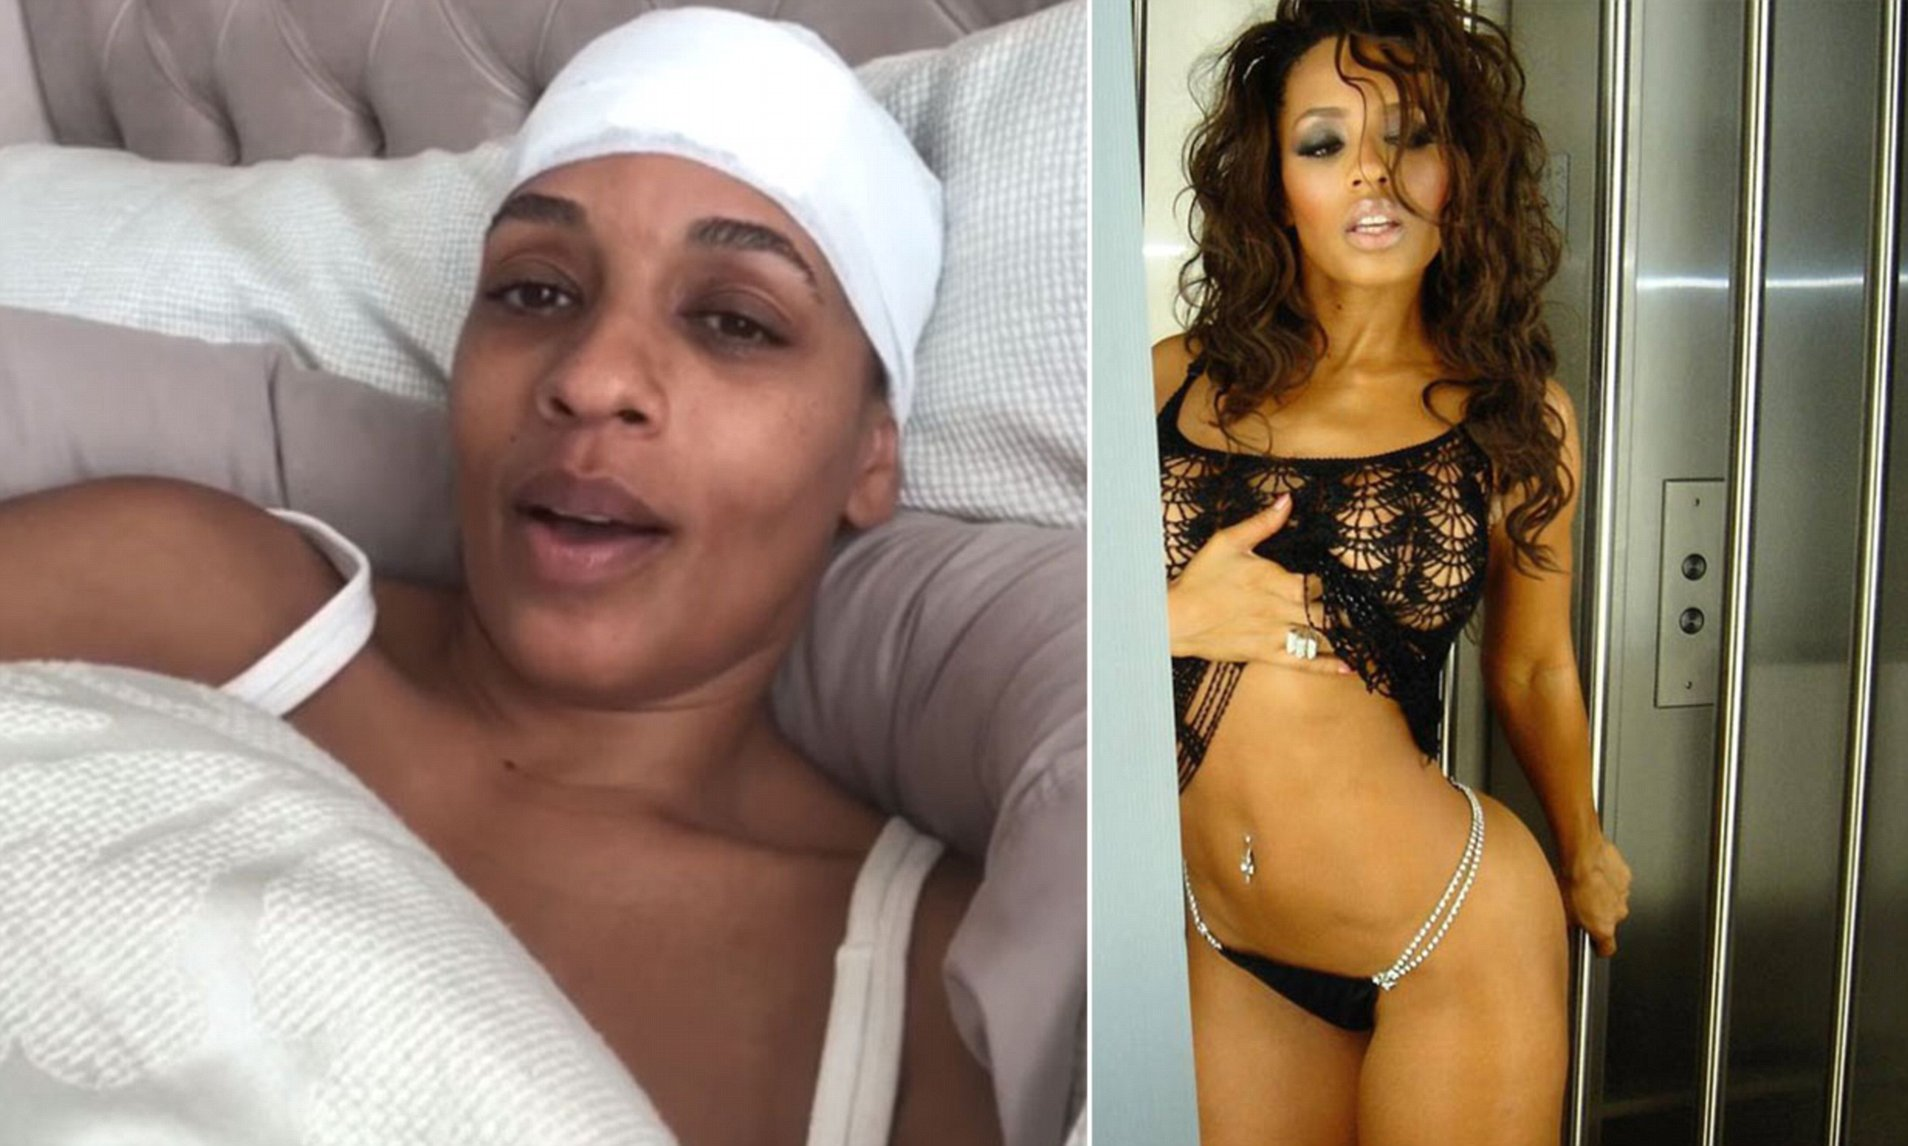 [WATCH] Melyssa Ford Sends Emotional Message Via Social Media About Nearly Fatal Car Wreck